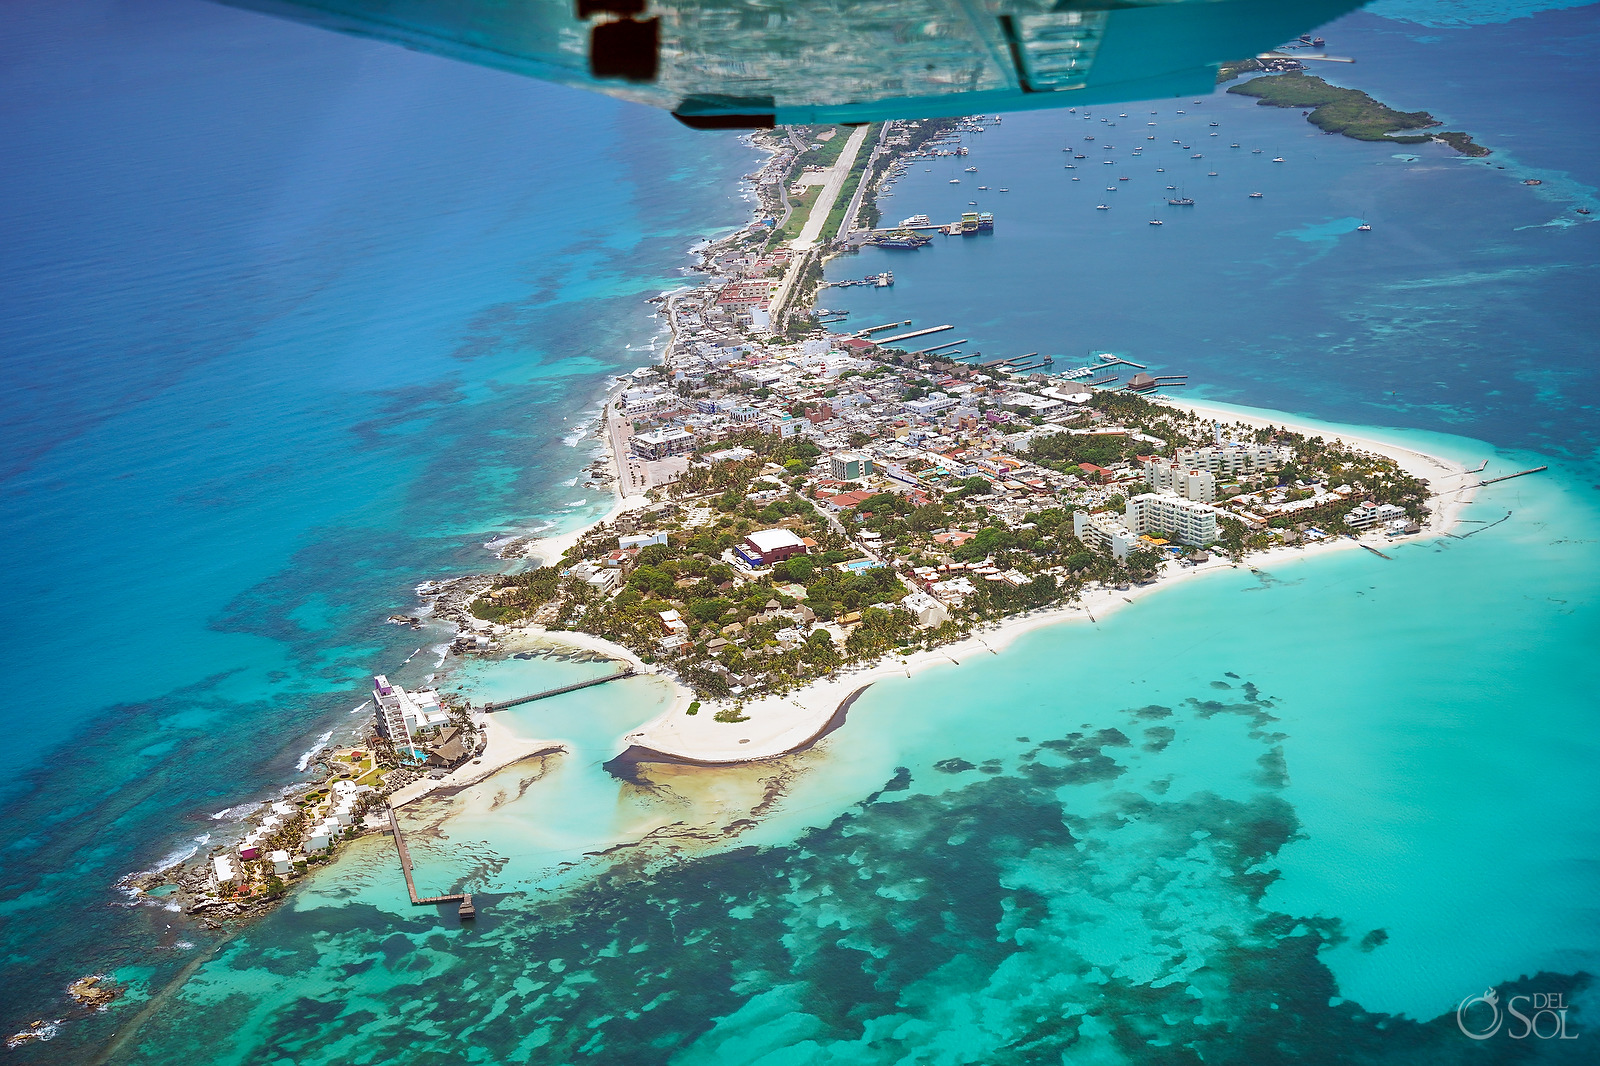 Isla Mujeres Cancun aerial photography tour without tourists